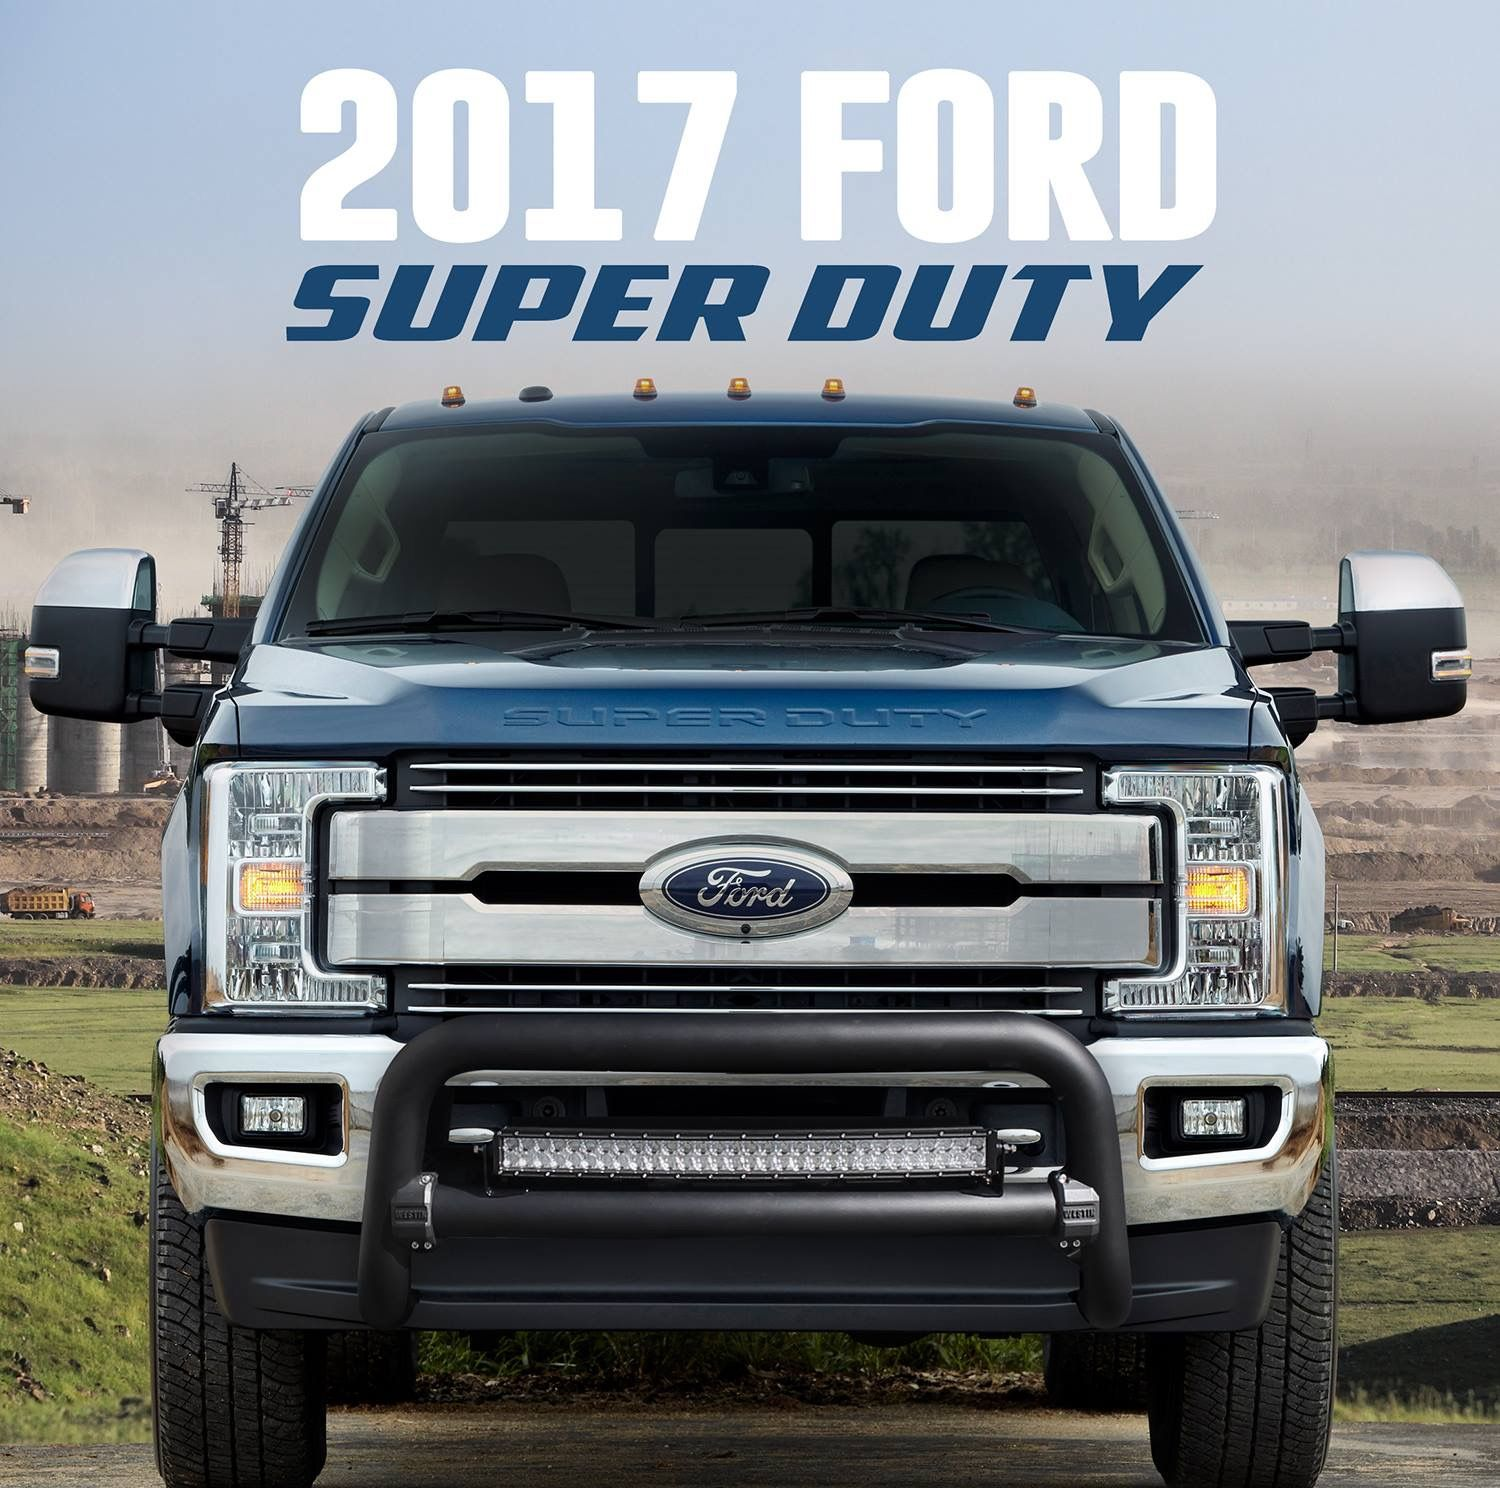 Westin is proud to announce the line up of quality products we offer for the 2017 ford super duty